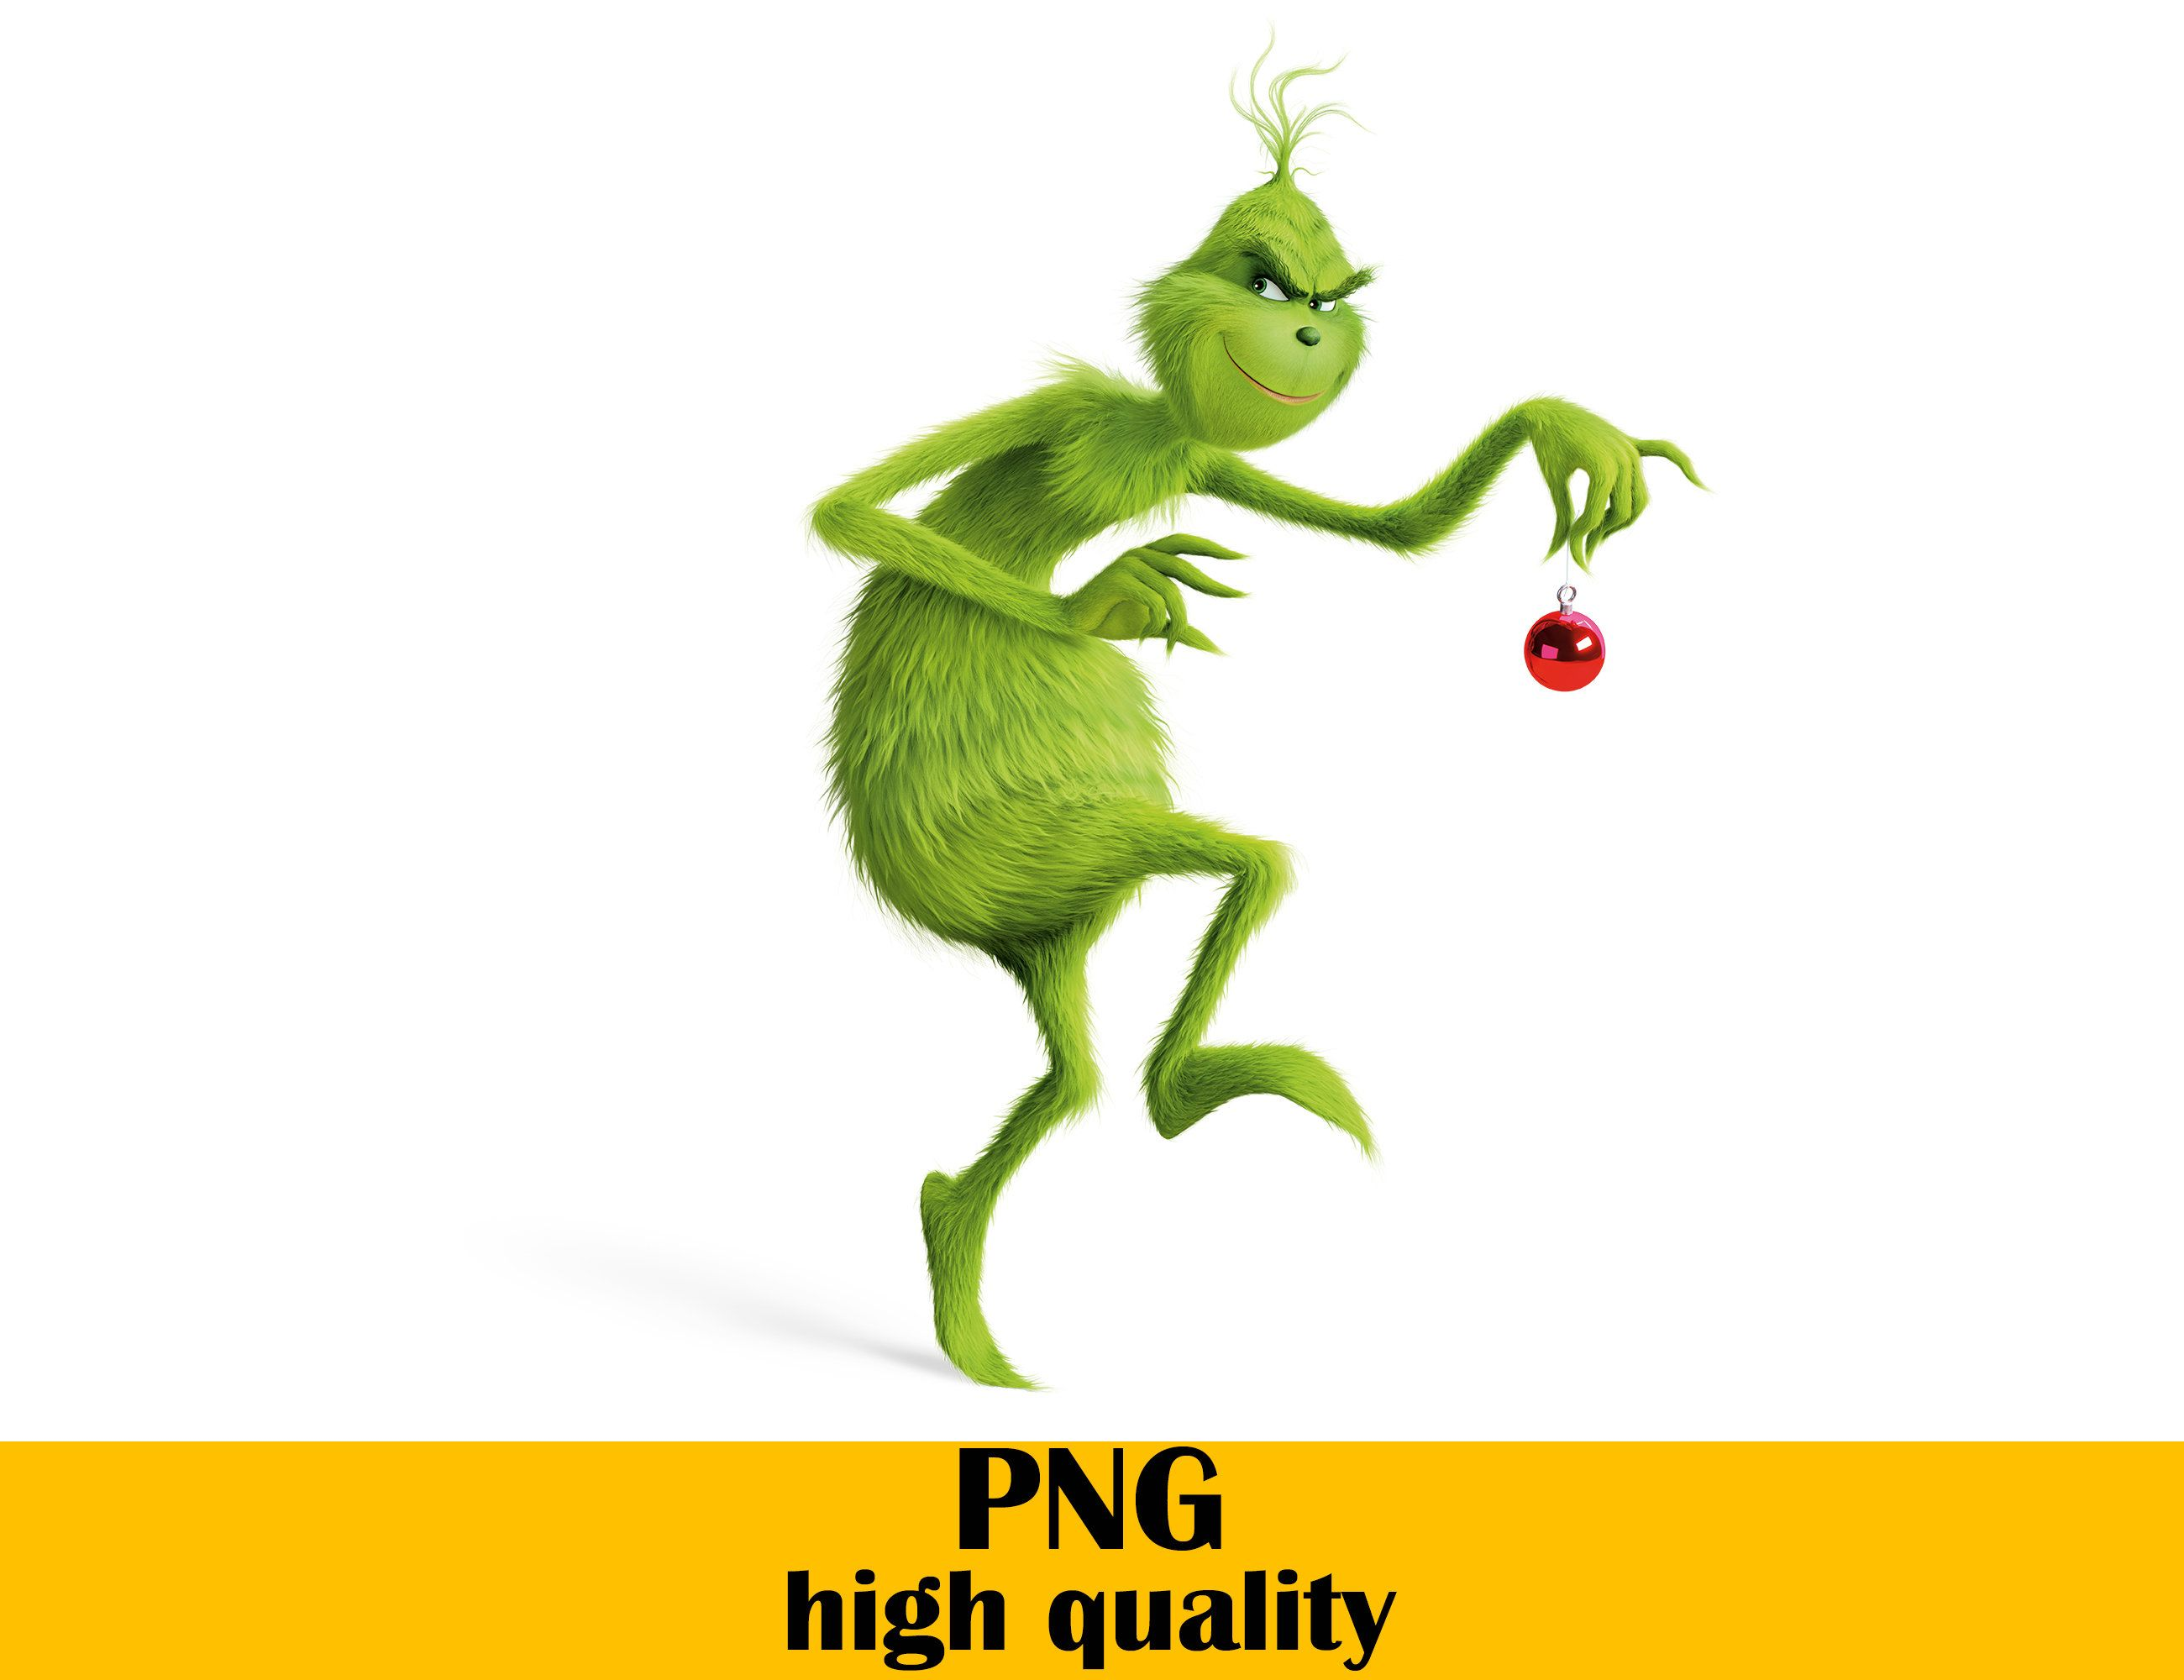 The Grinch Png Grinch Christmas Png Merry Christmas Png Etsy In 2021 Grinch Png Grinch Christmas Grinch